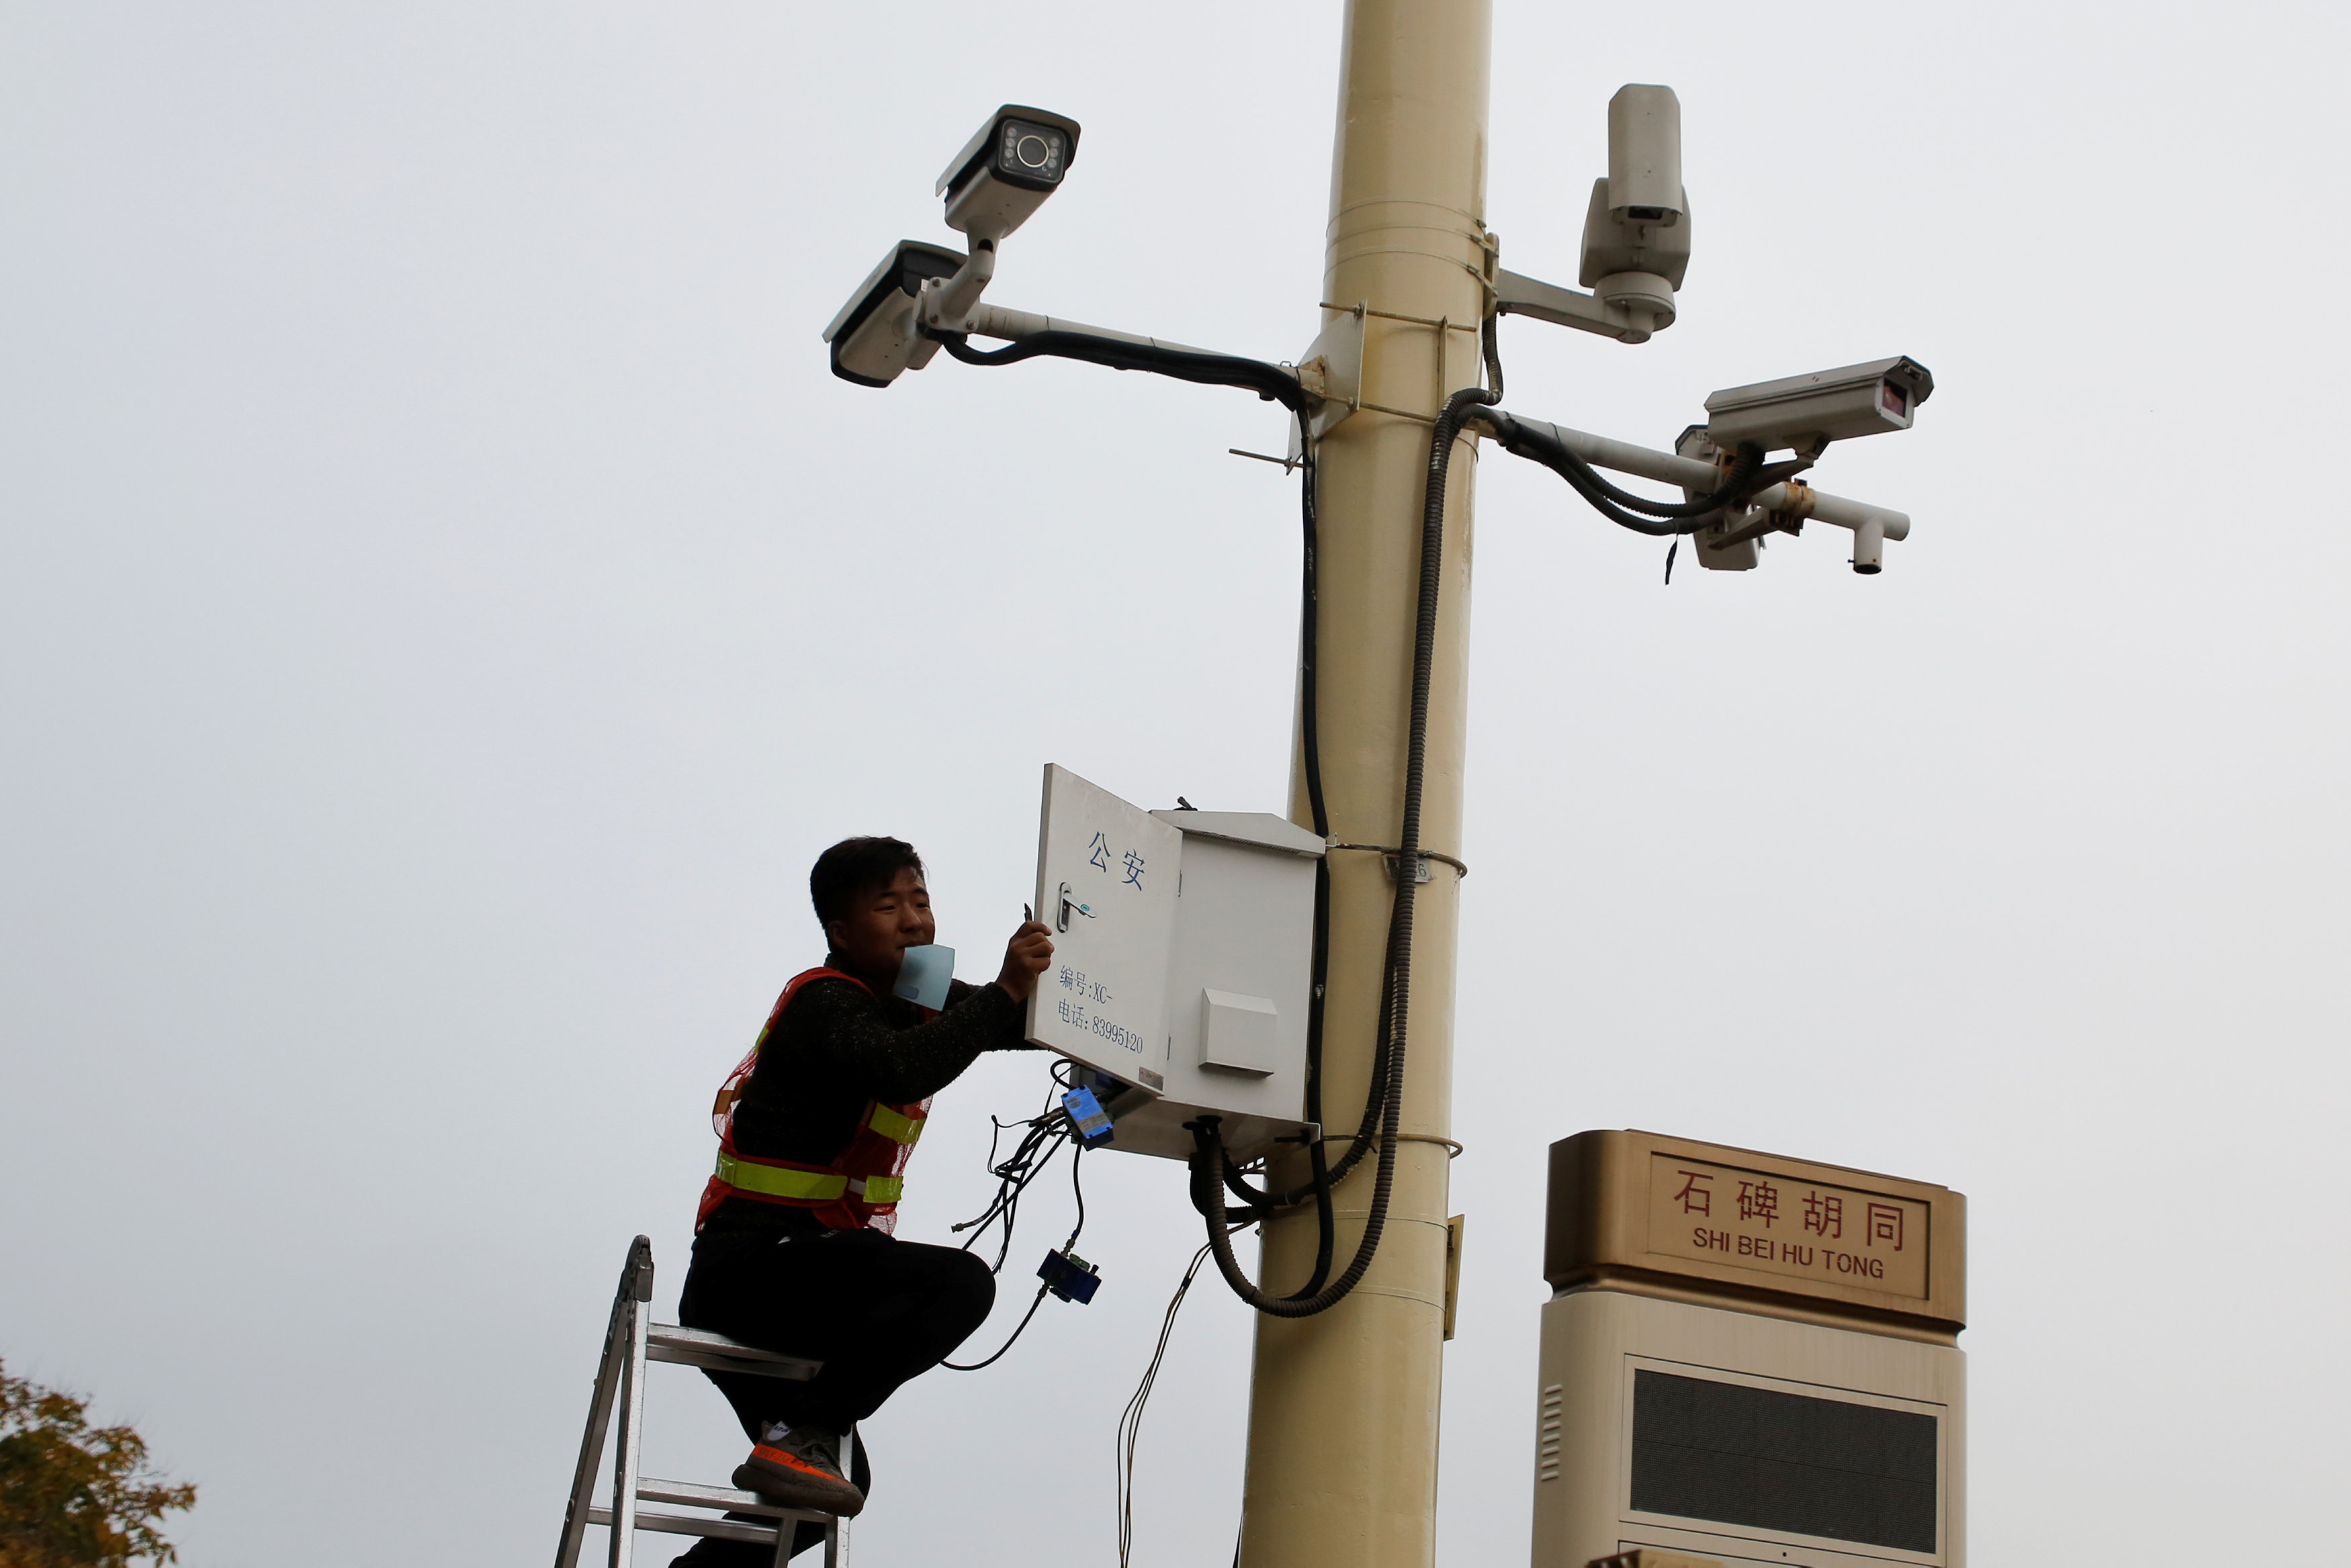 A man works on electrical wires in a box underneath surveillance cameras at Tiananmen Square in Beijing, China, October 12, 2017.